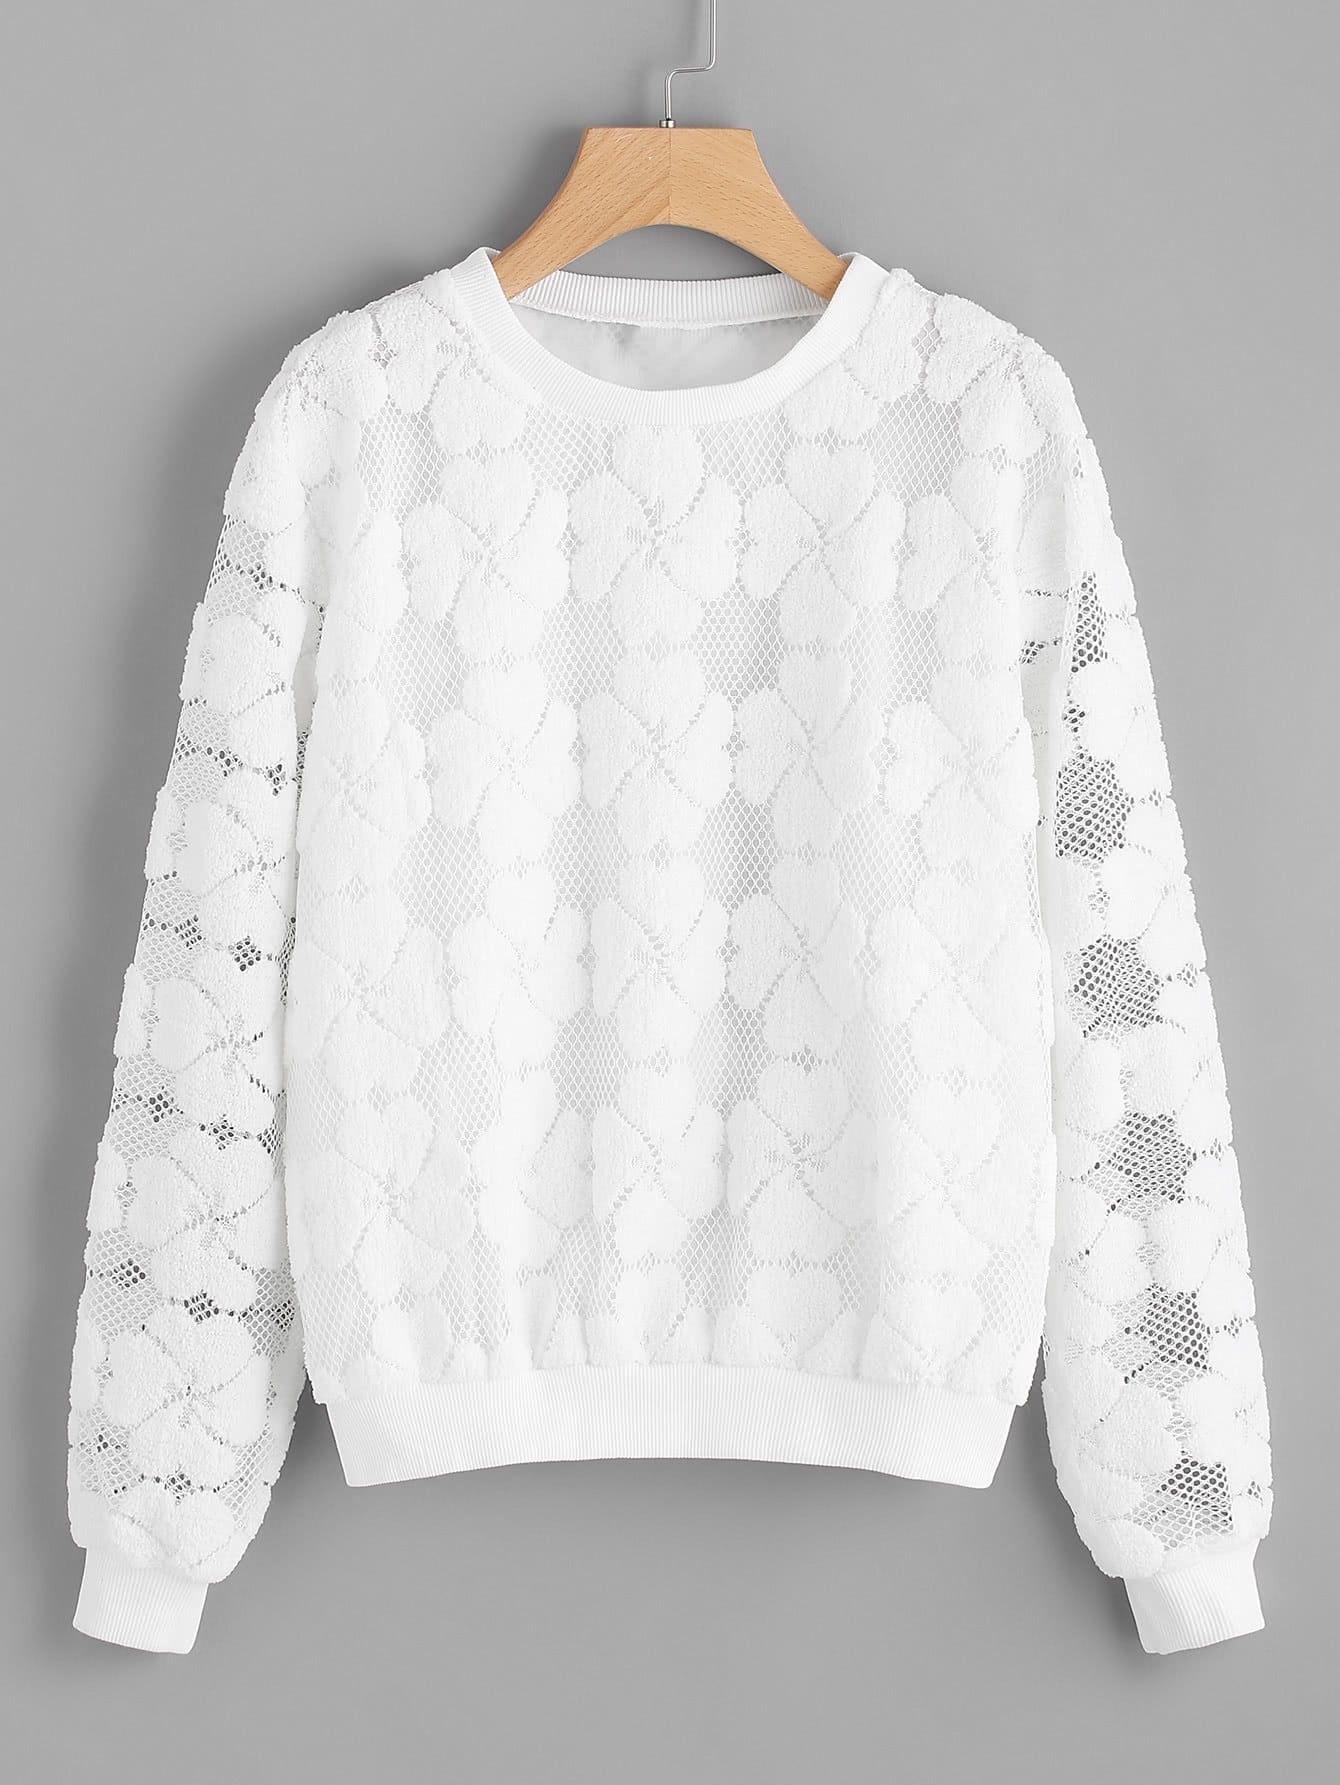 Flower Embroidered Contrast Sweatshirt contrast embroidered two tone plush top